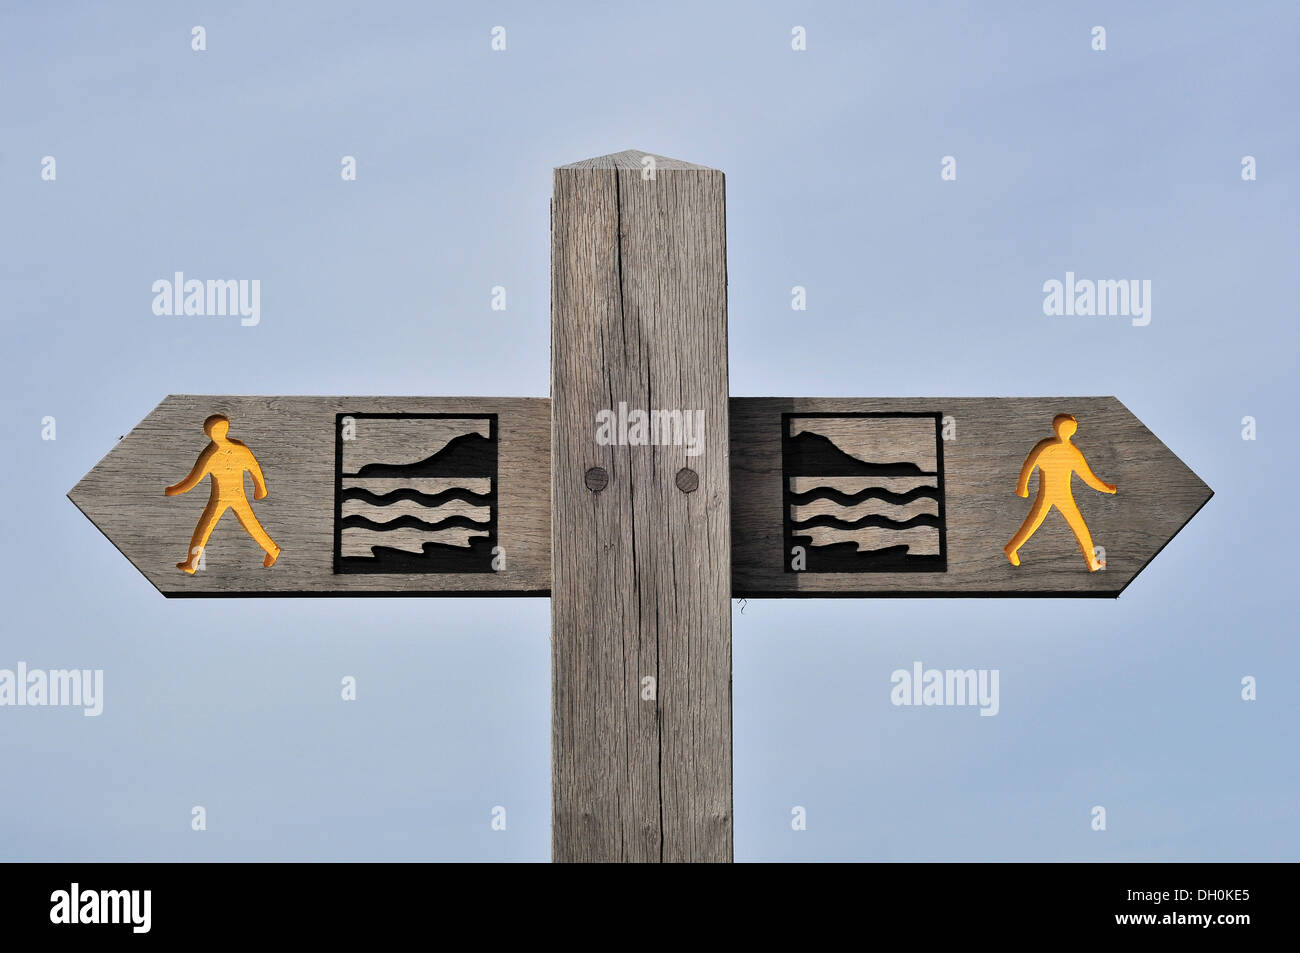 Wooden finger signpost showing the route of the Wales Coast Path near Aberystwyth, Ceredigion, Wales, UK - Stock Image